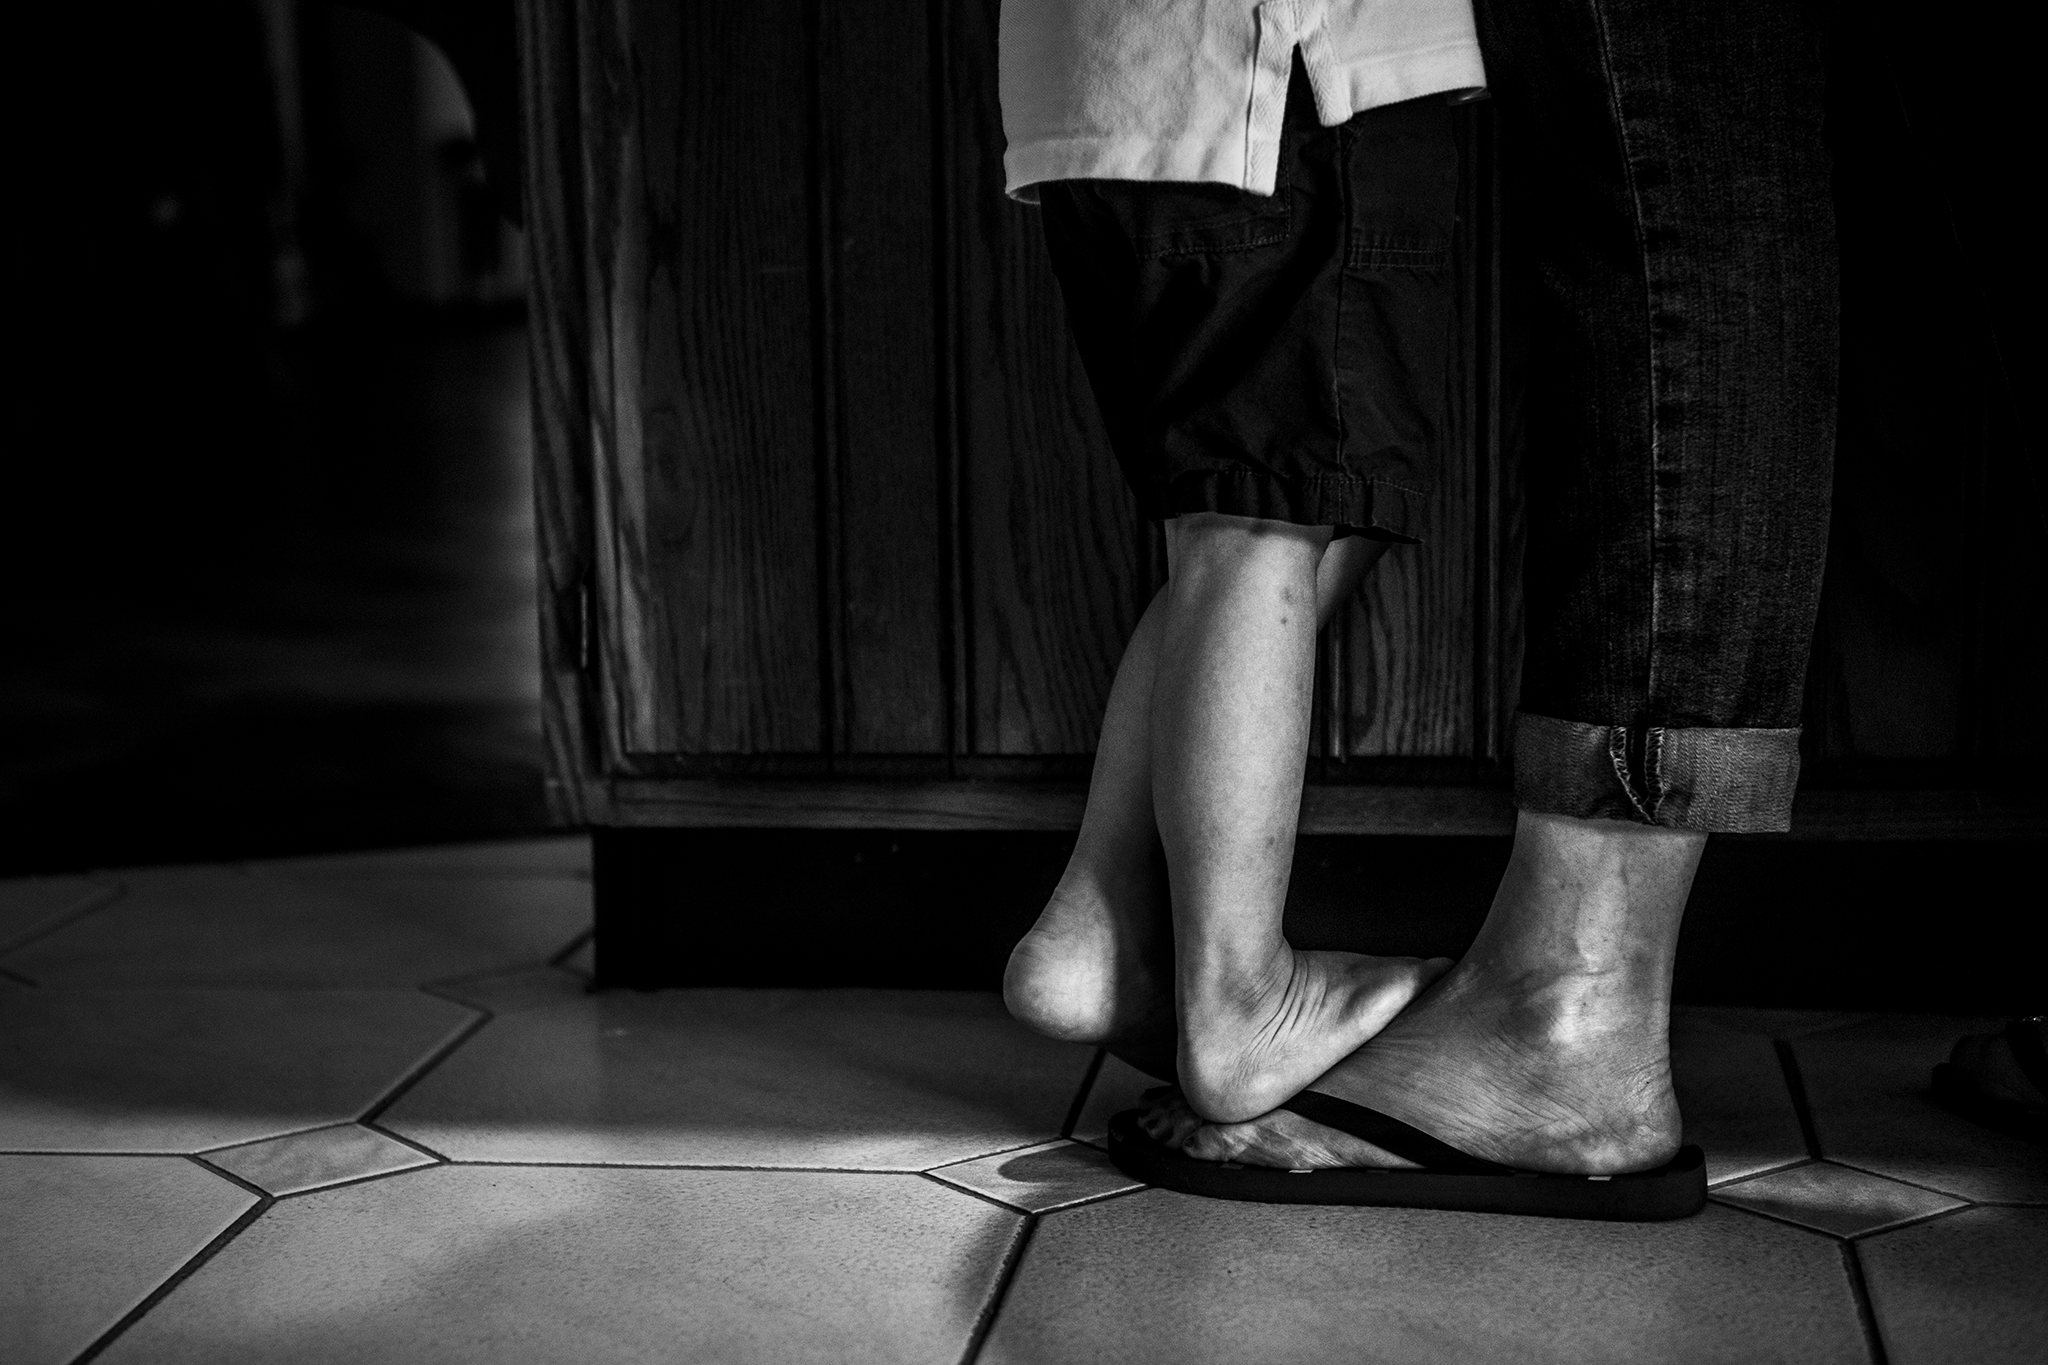 Fine art style image in black and white of ct boy mom featuring boys feet standing on mom's feet.